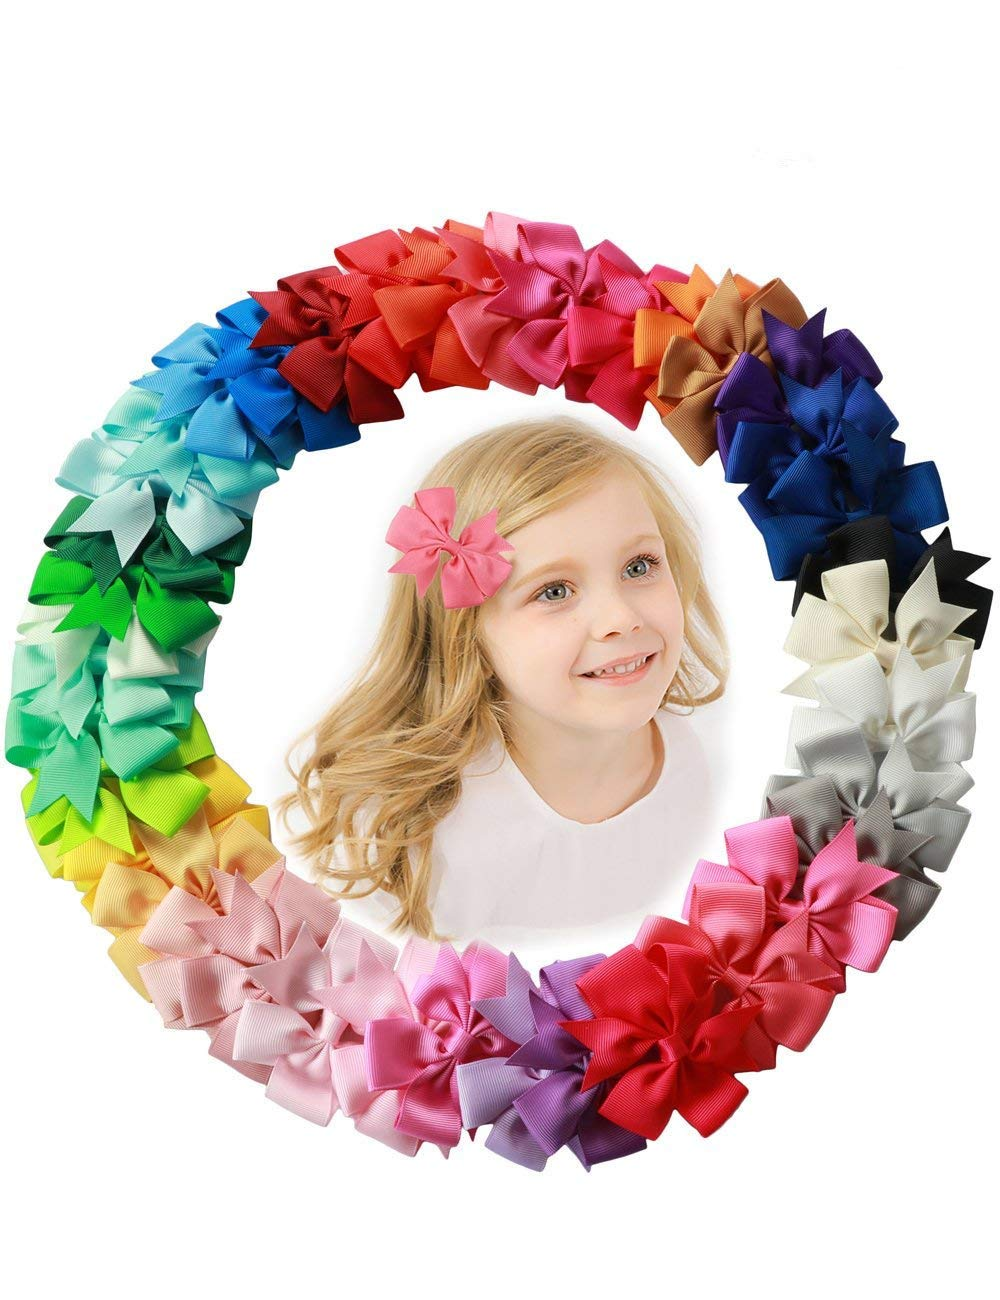 Golden Rule Hair Bows For Baby Girls Kids Corlorful Alligator Clip Cute Barrettes (40PCS)